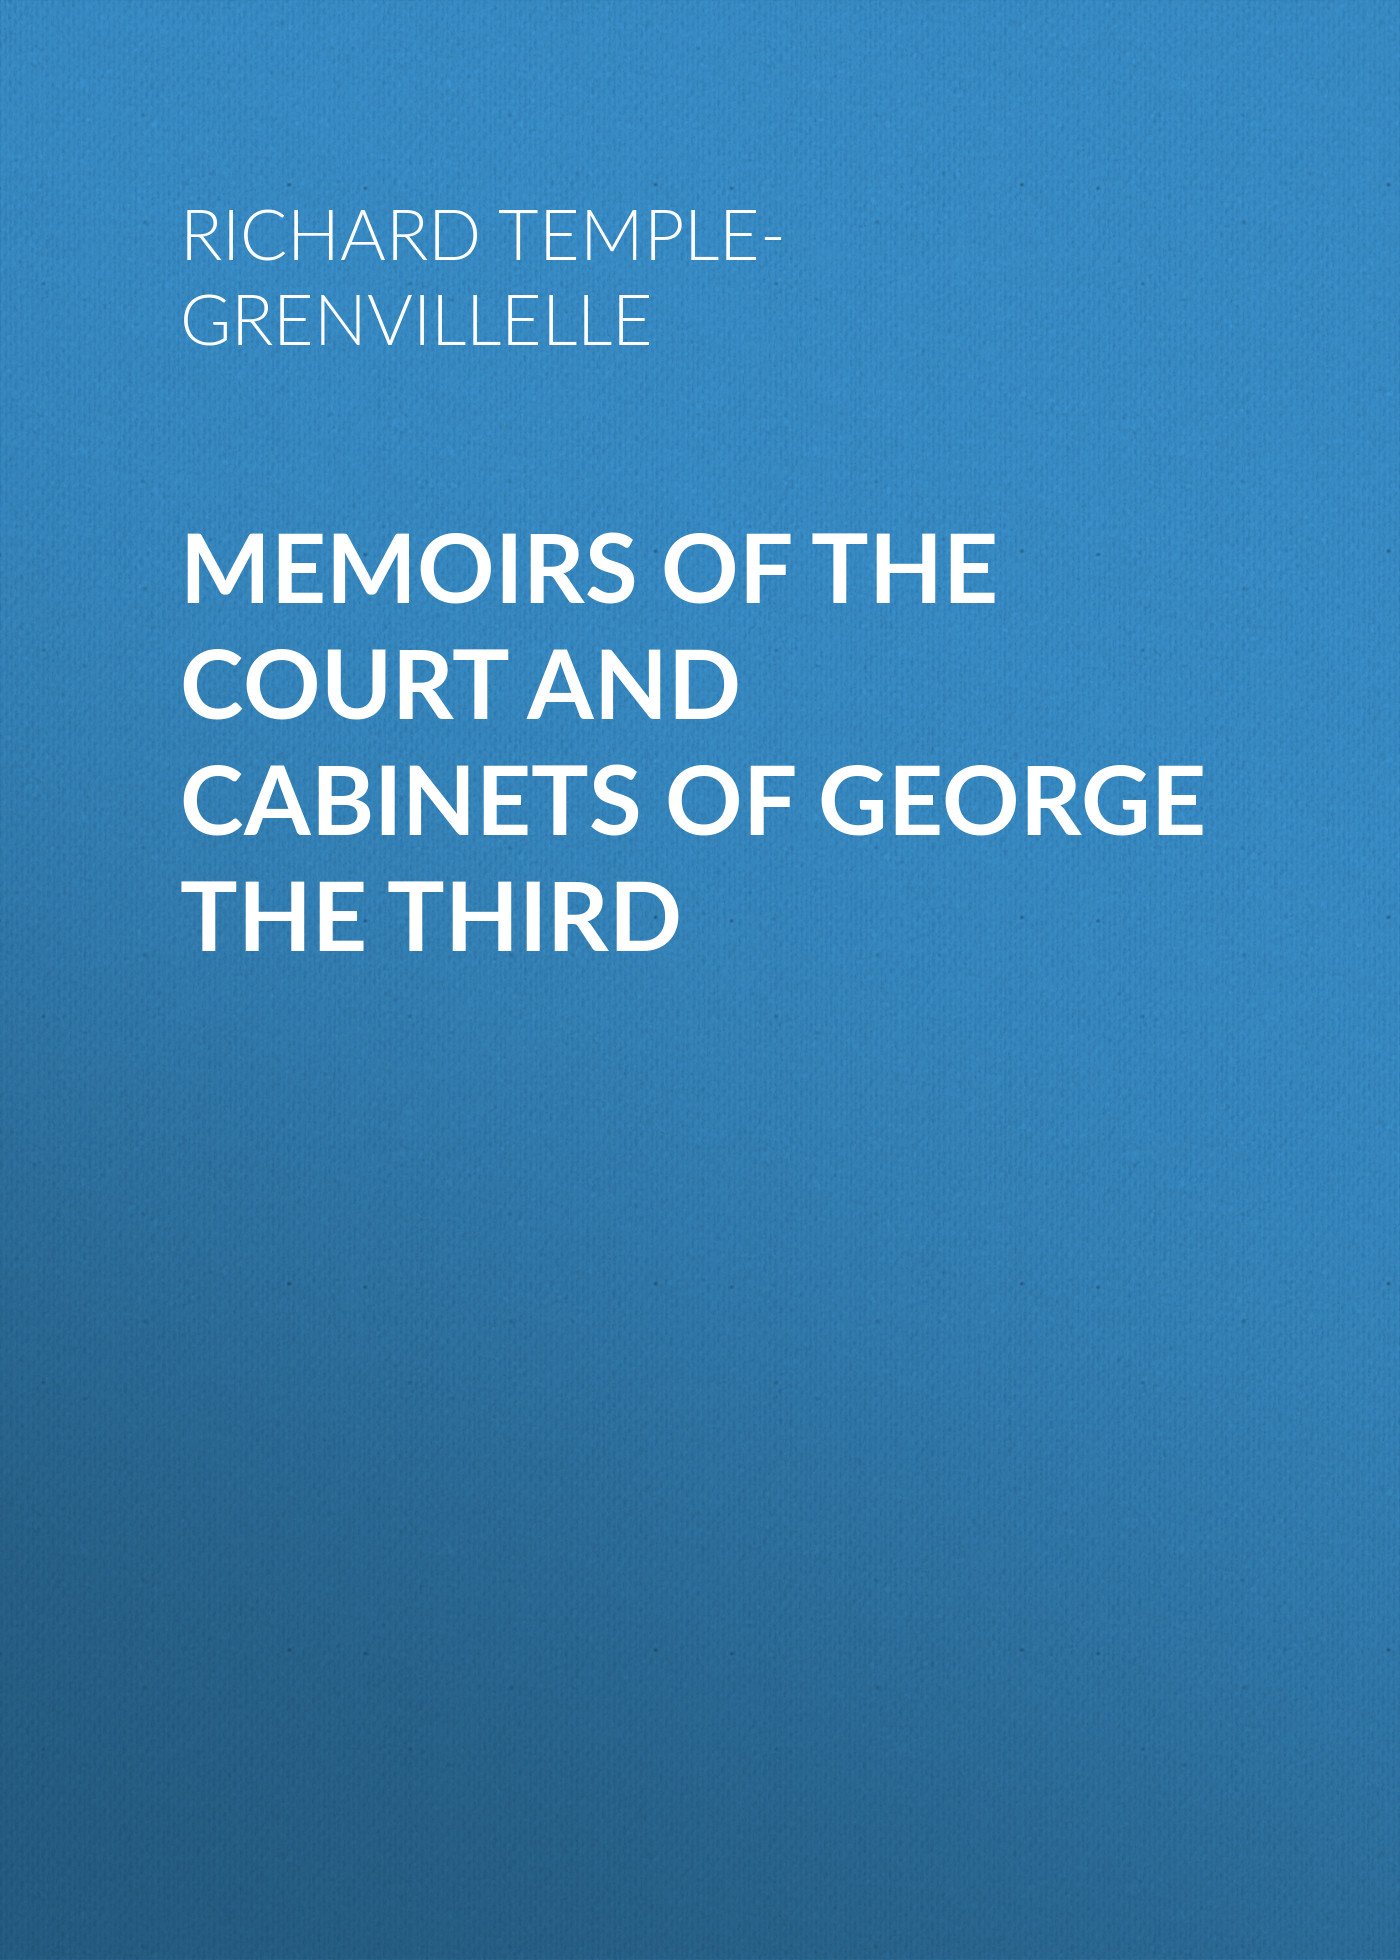 memoirs of the court and cabinets of george the third